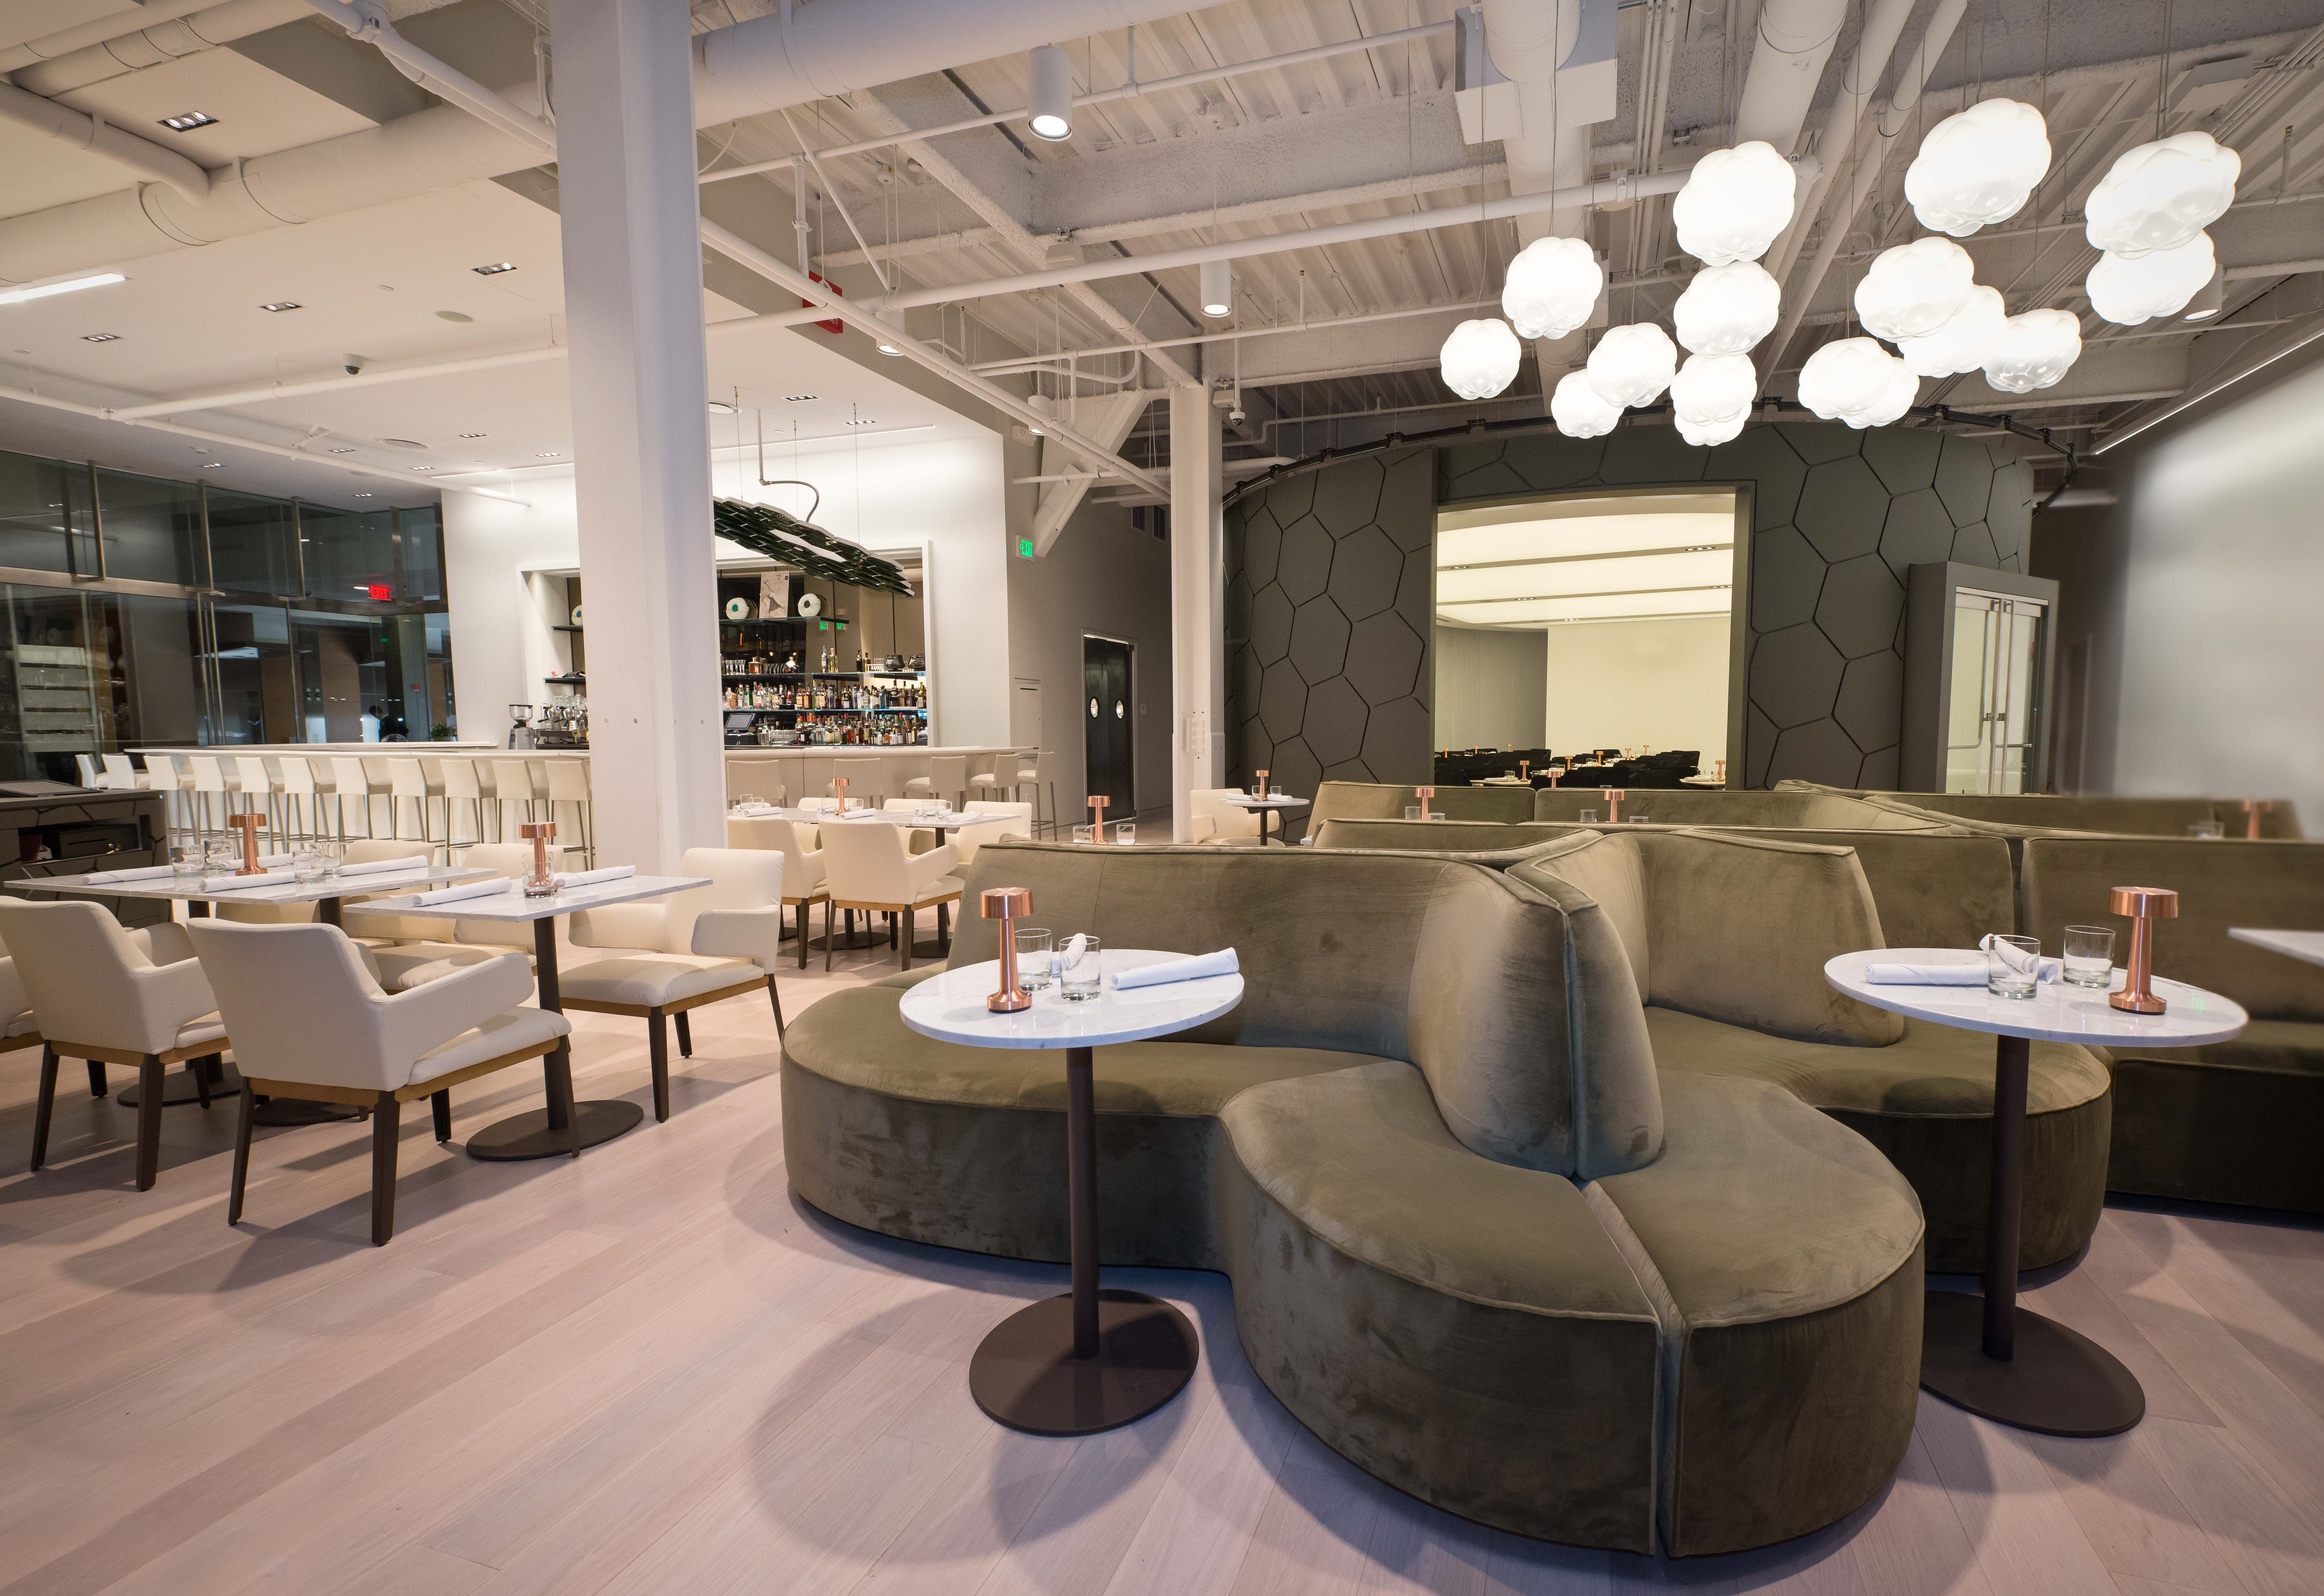 The interior of a restaurant with geometric white light fixtures, curved olive green booths, and mostly white accents